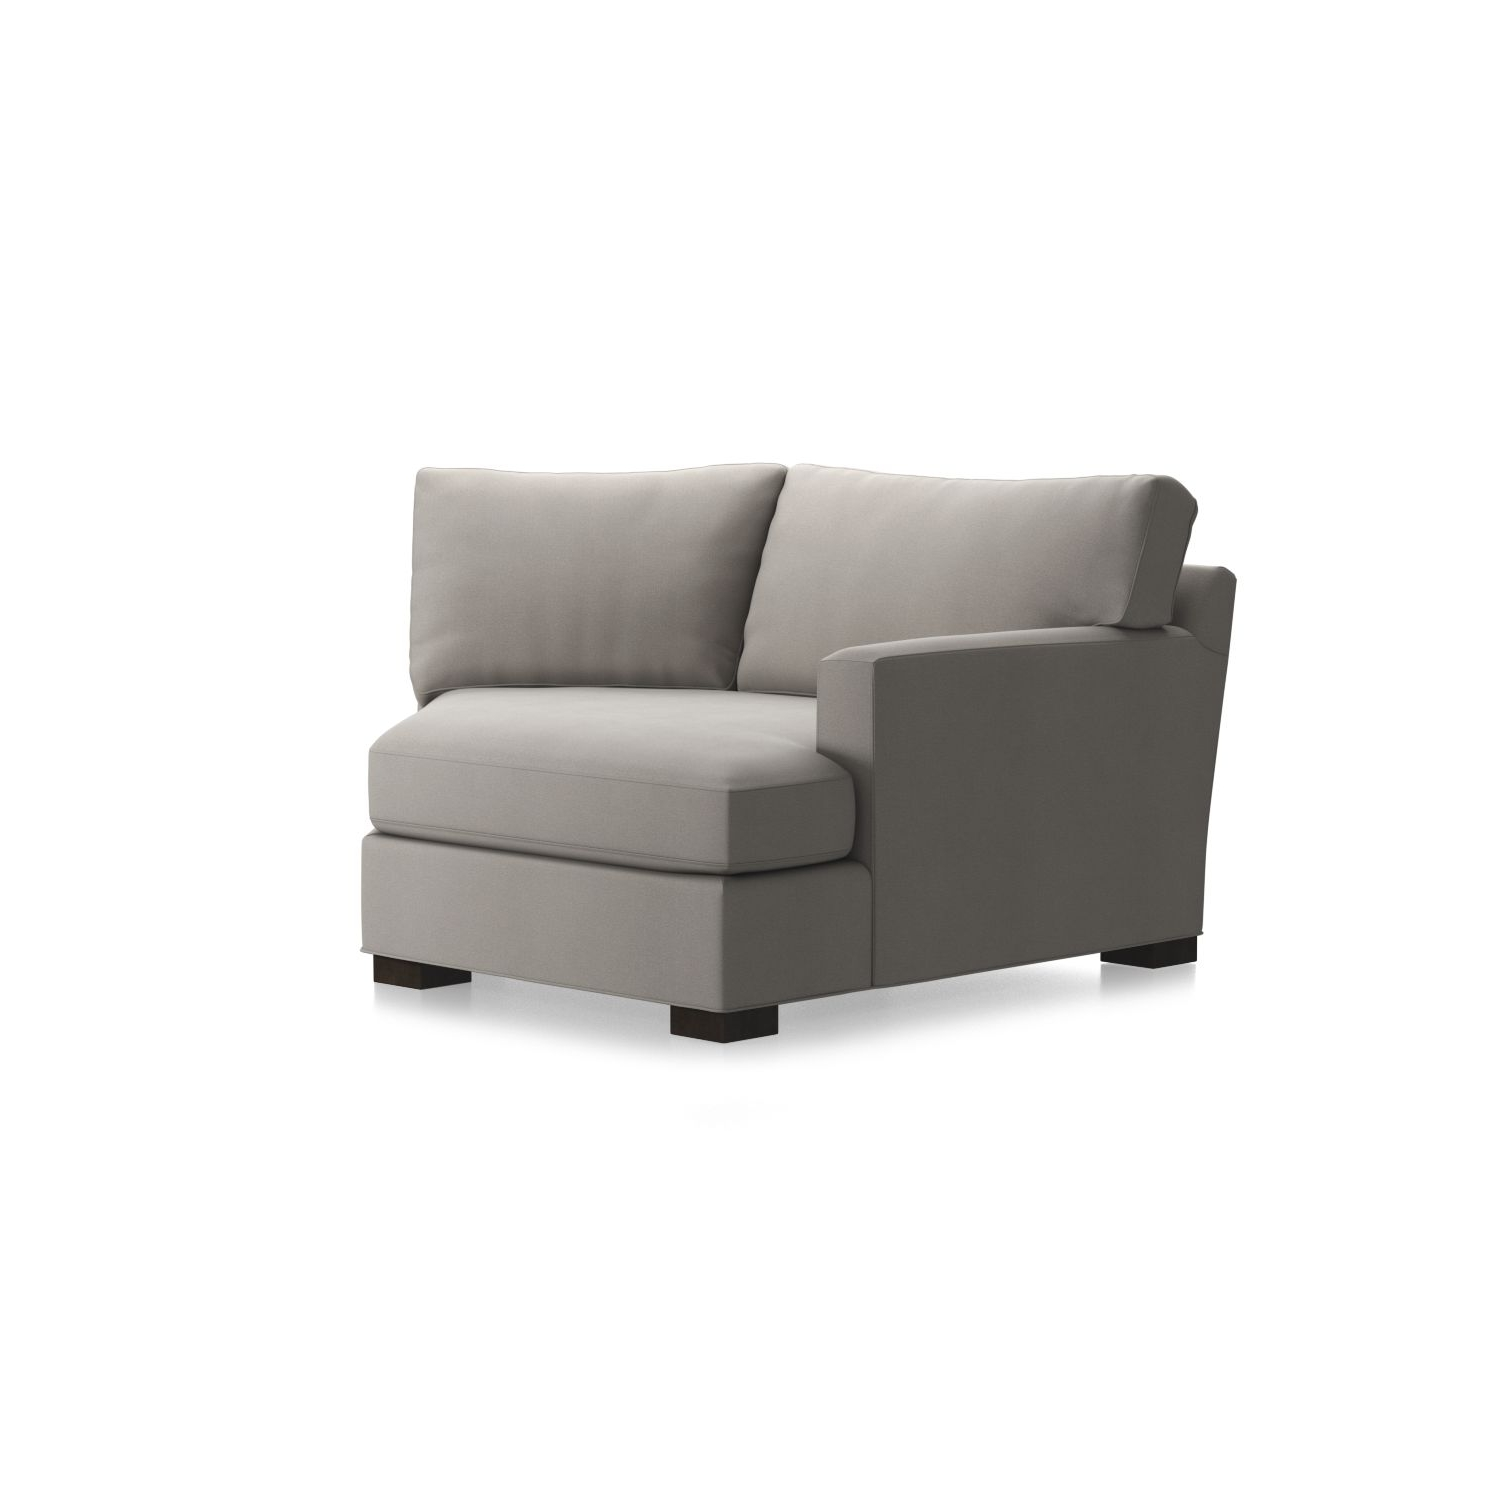 Favorite Angled Chaise Sofas Pertaining To Axis Ii Left Arm Angled Chaise Lounge In Chaises + Reviews (View 13 of 20)